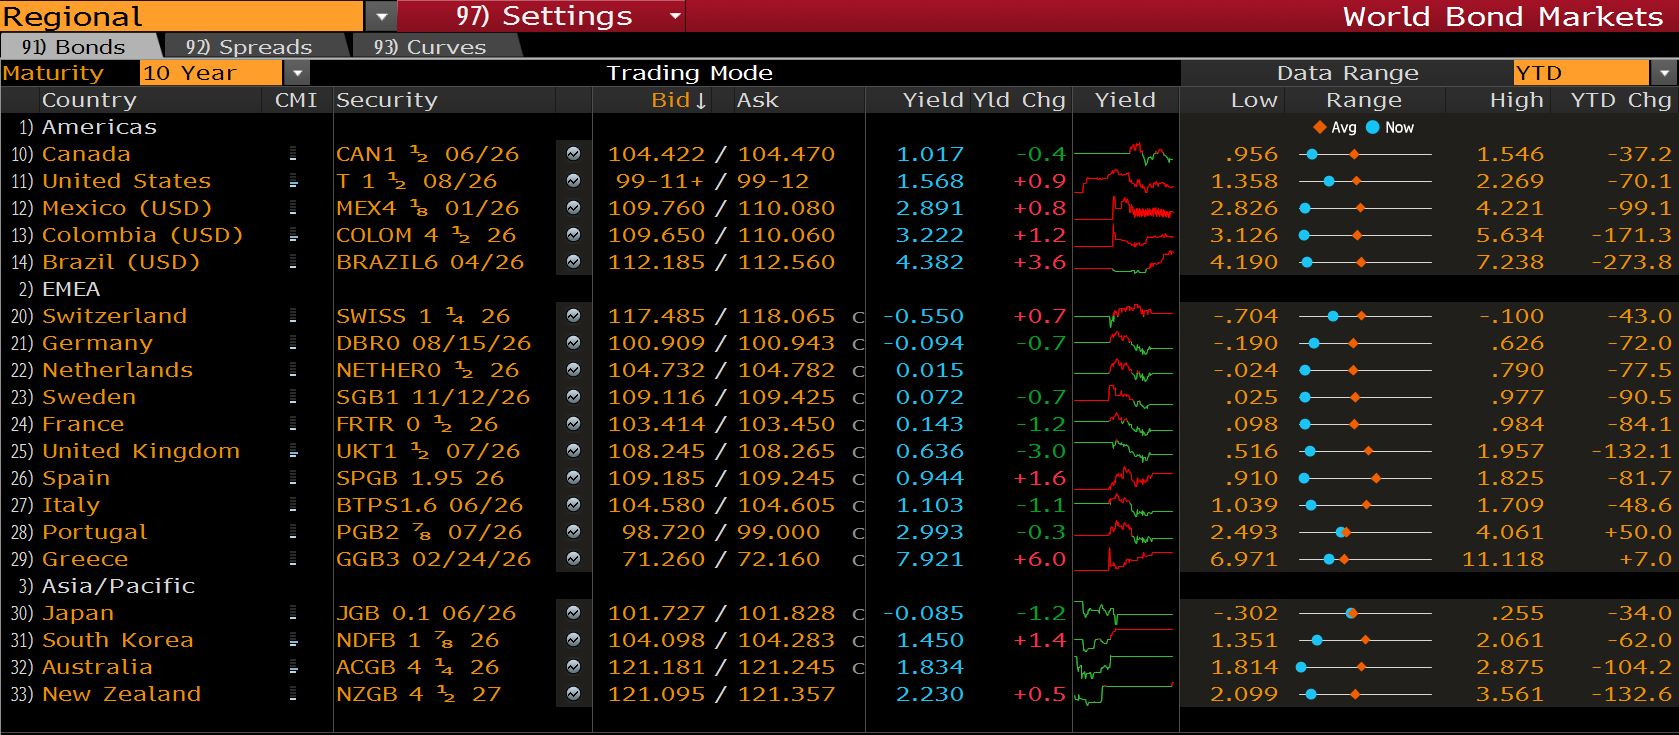 Bloomberg 10 Year Bond